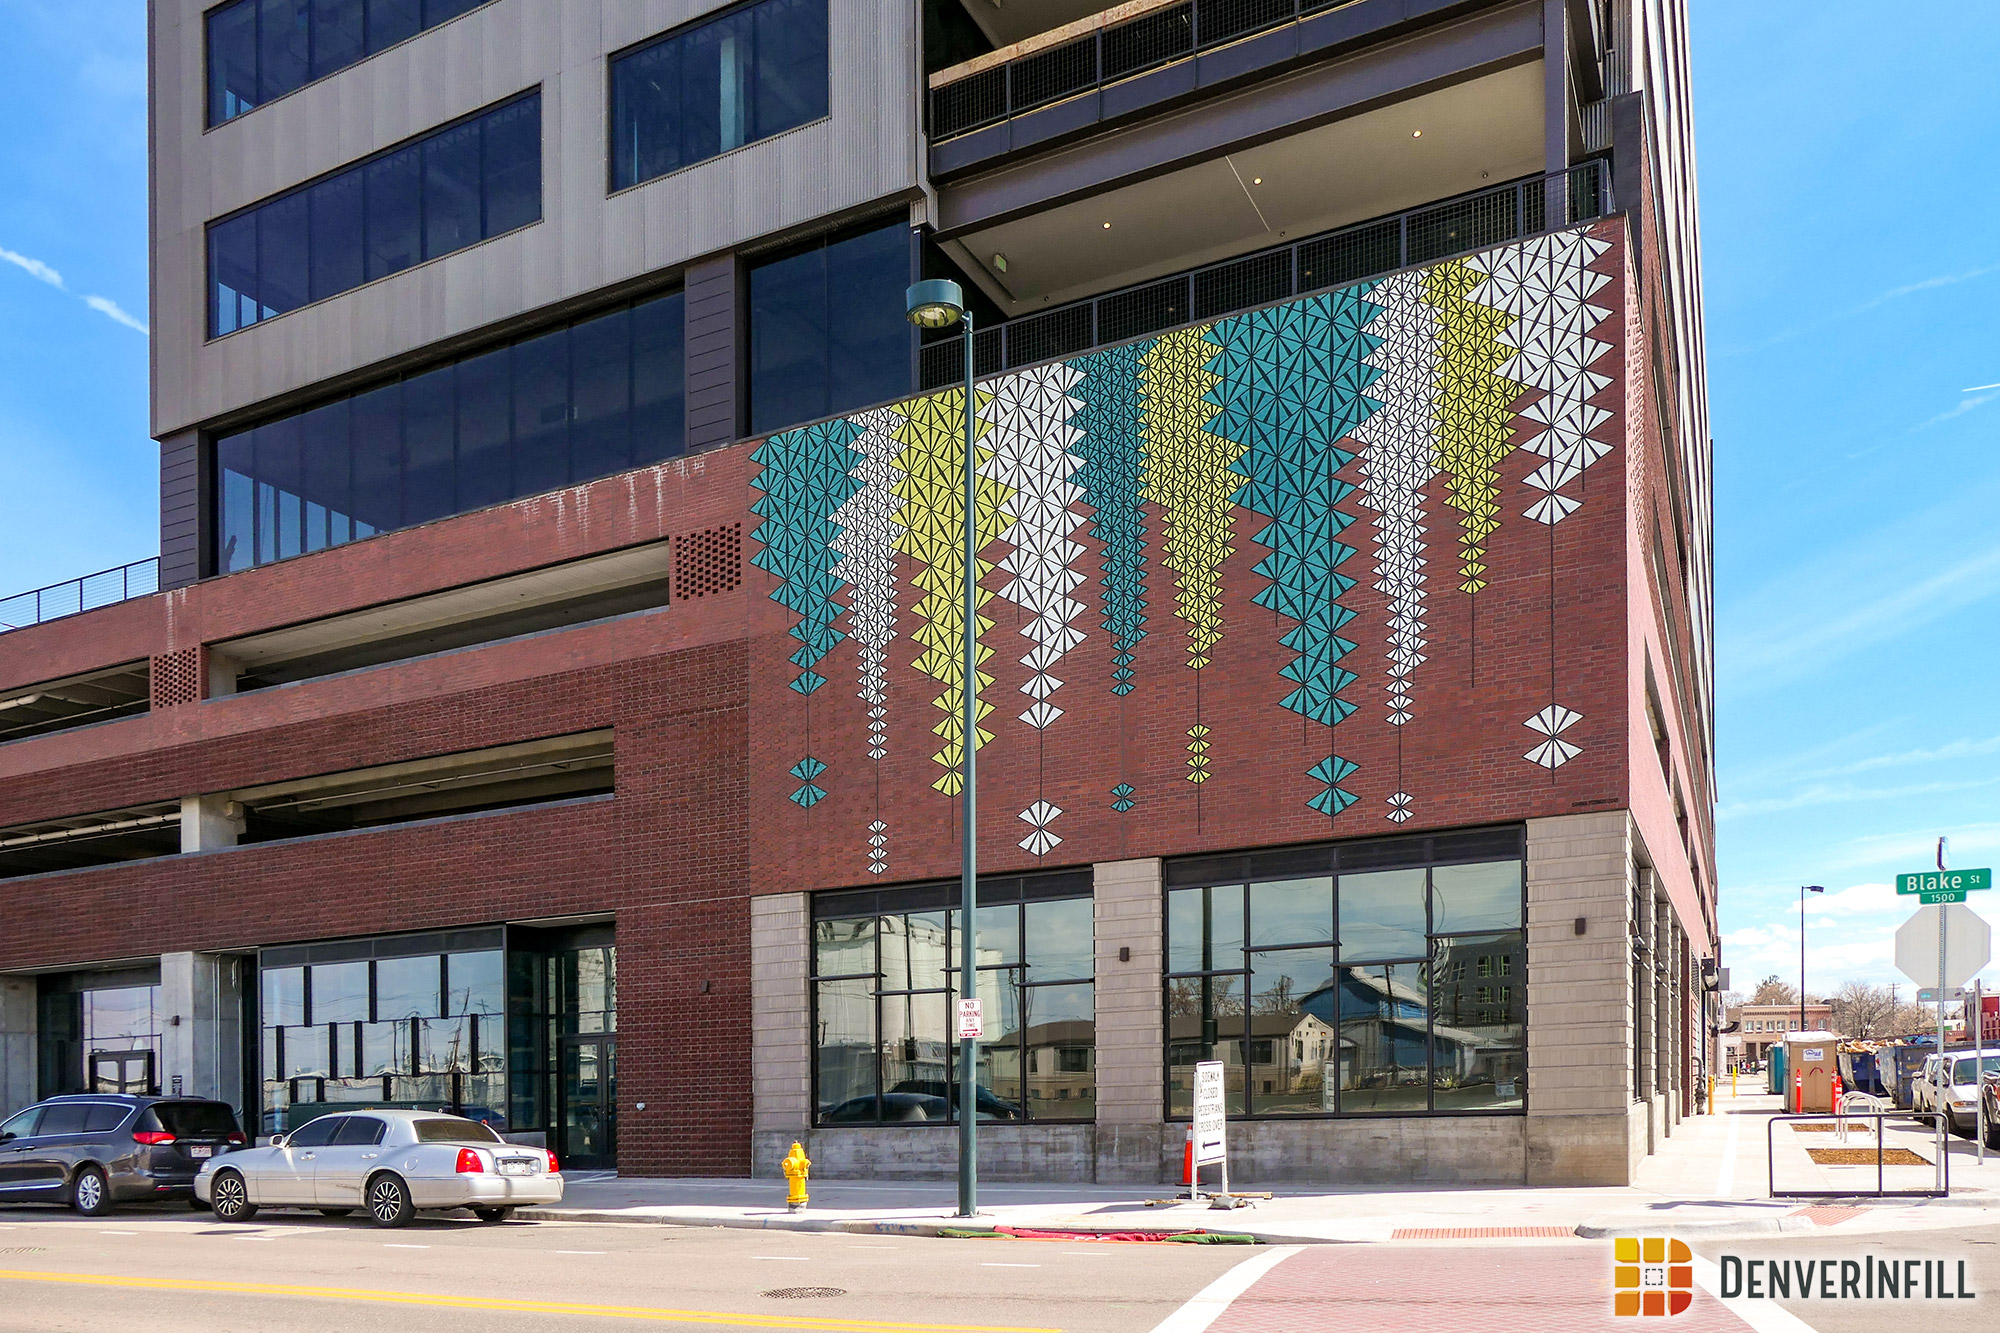 Facade mural on HUB South